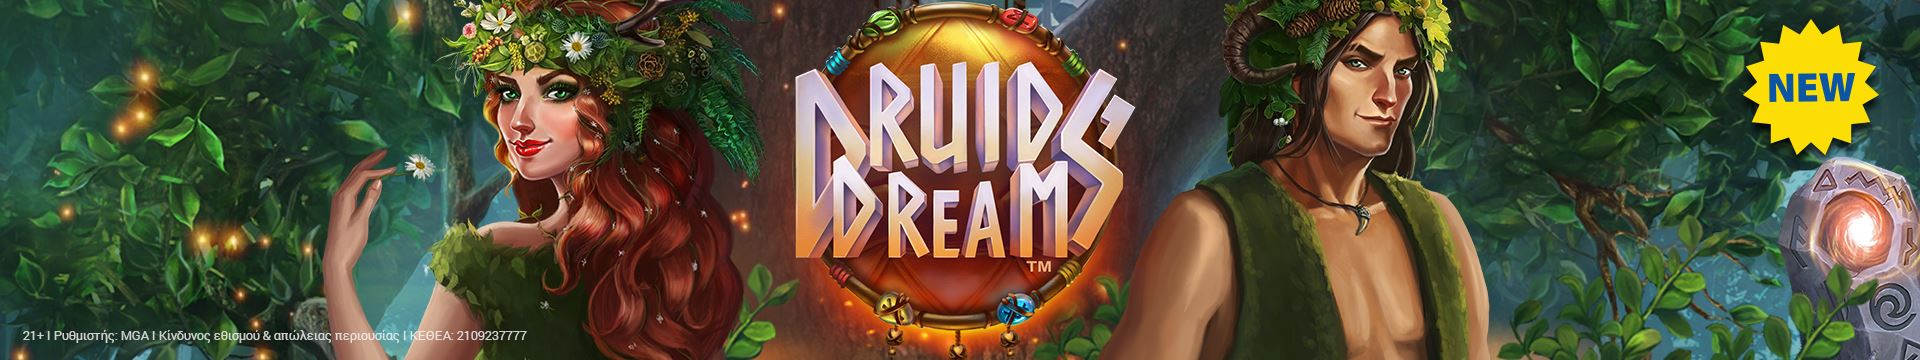 Druids_Dream